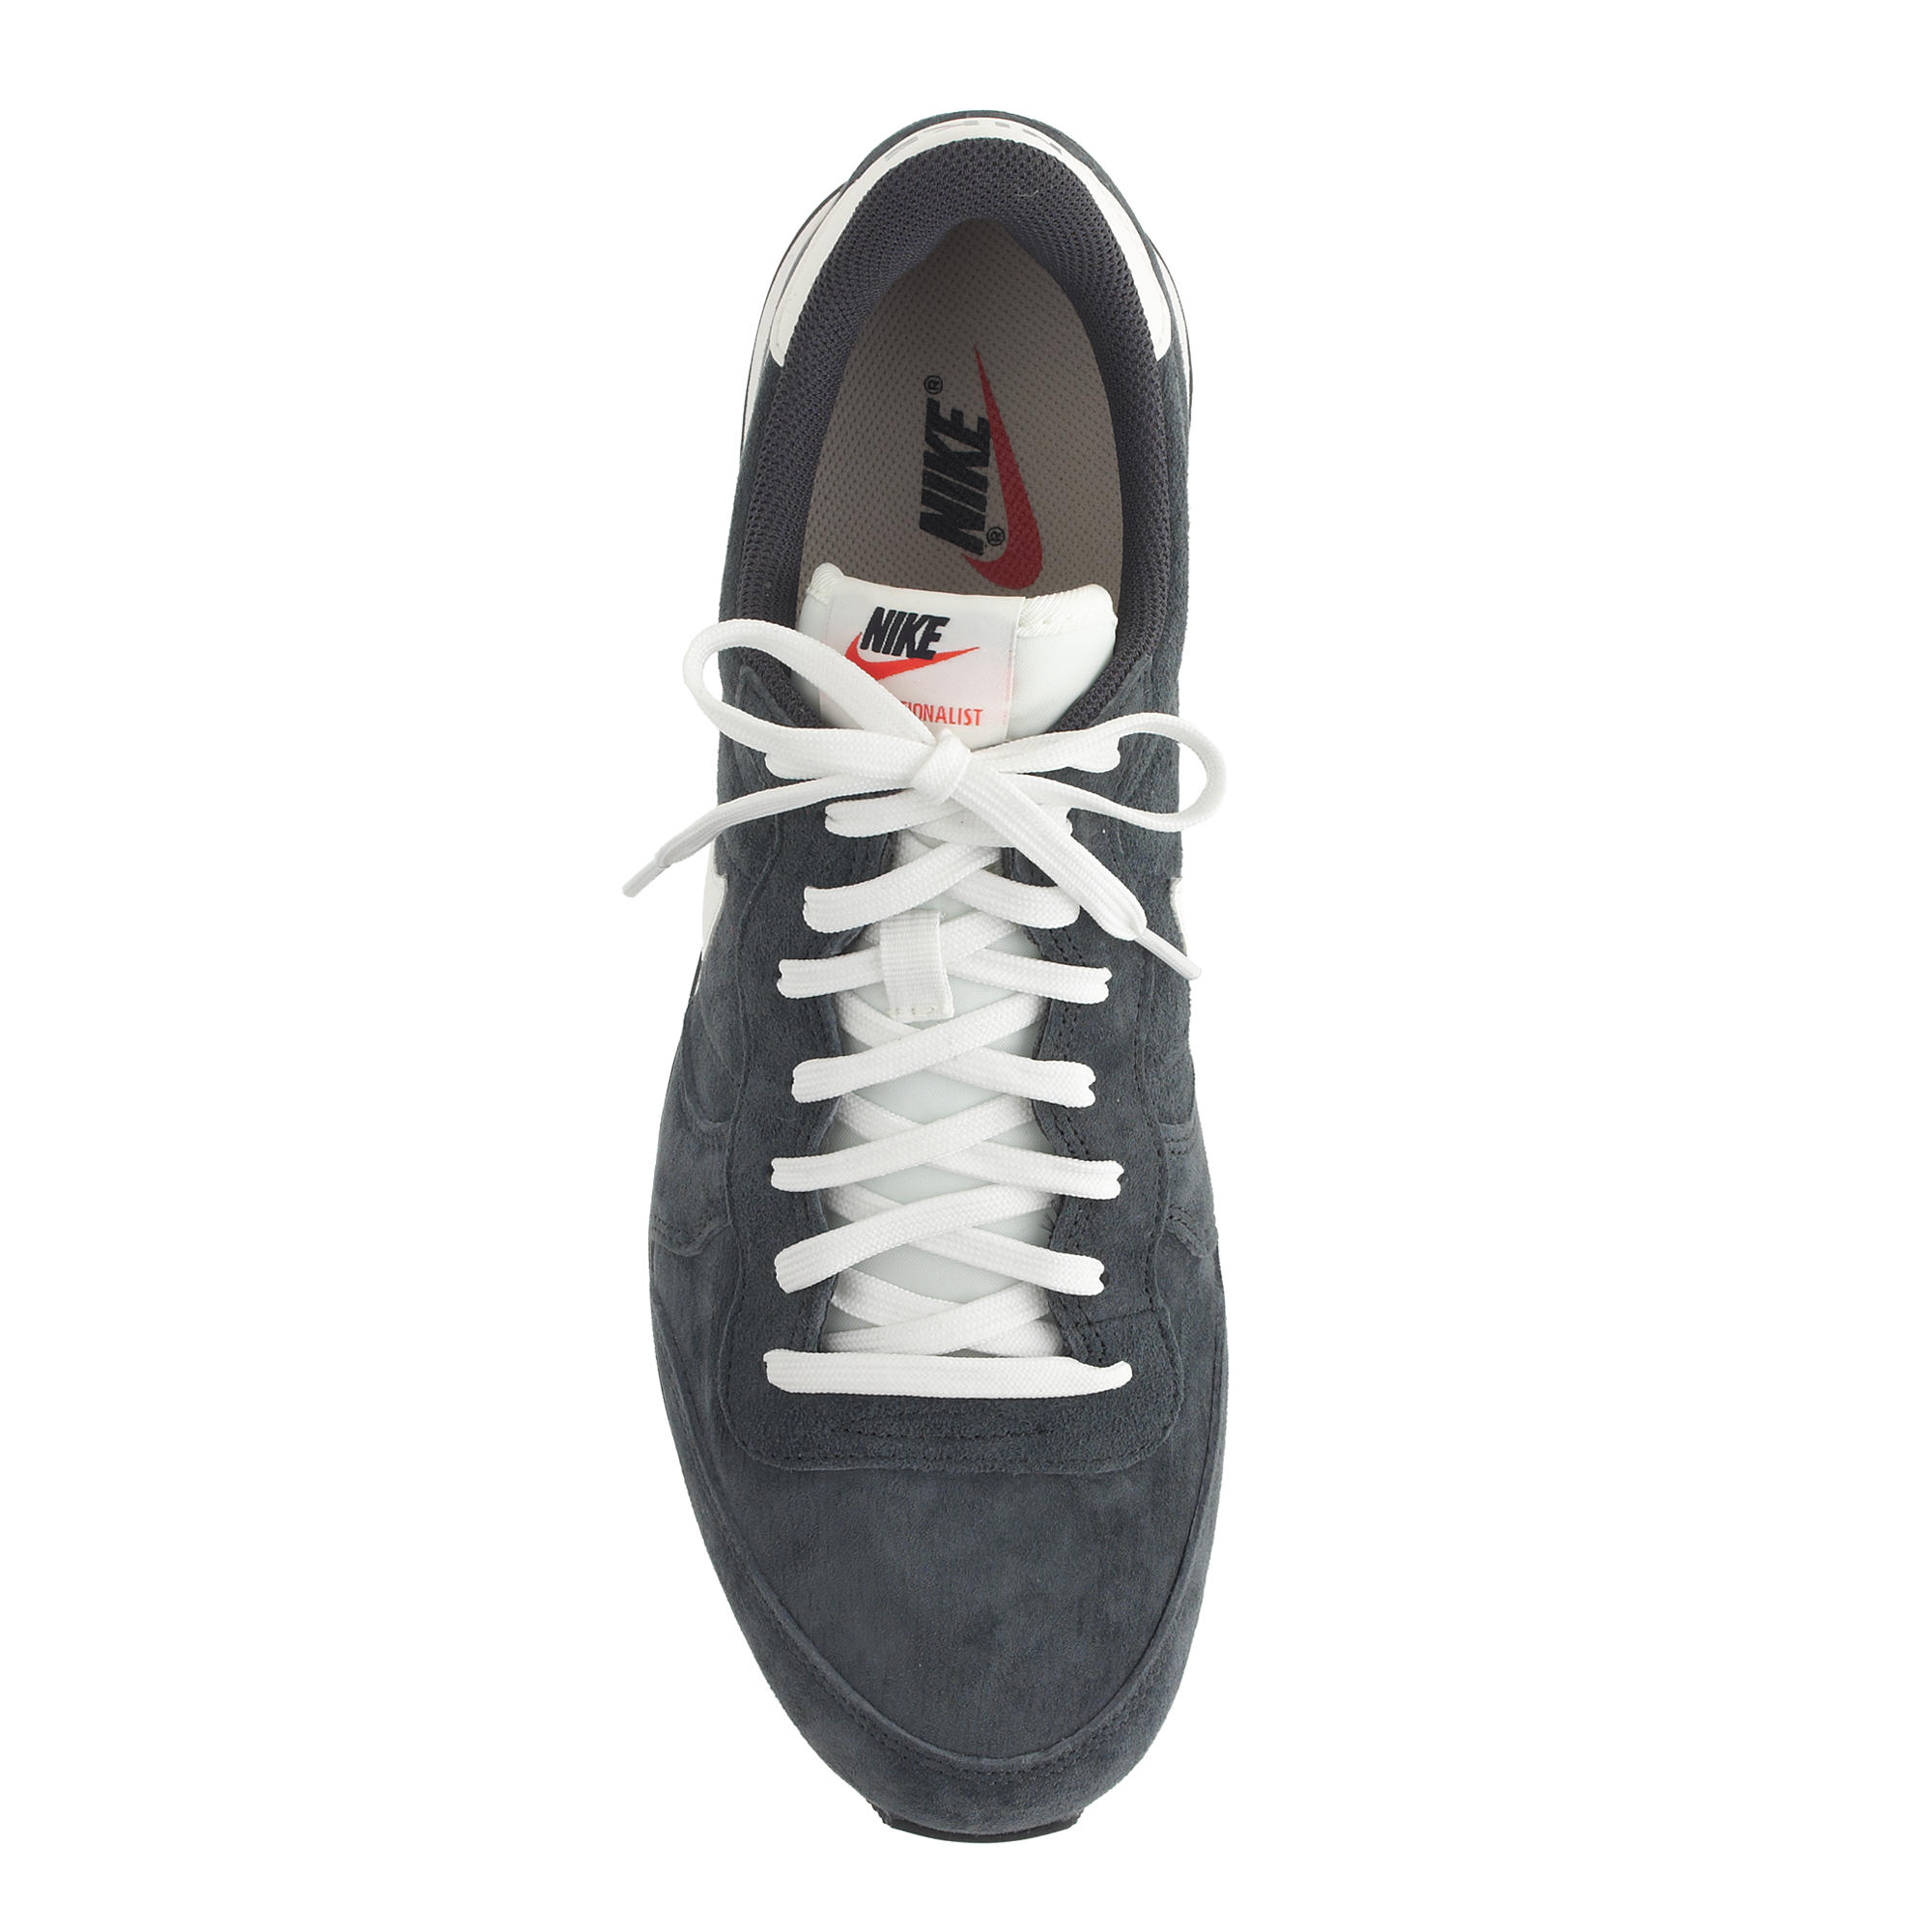 ... men's nike® limited edition pdx internationalist mid sneakers .